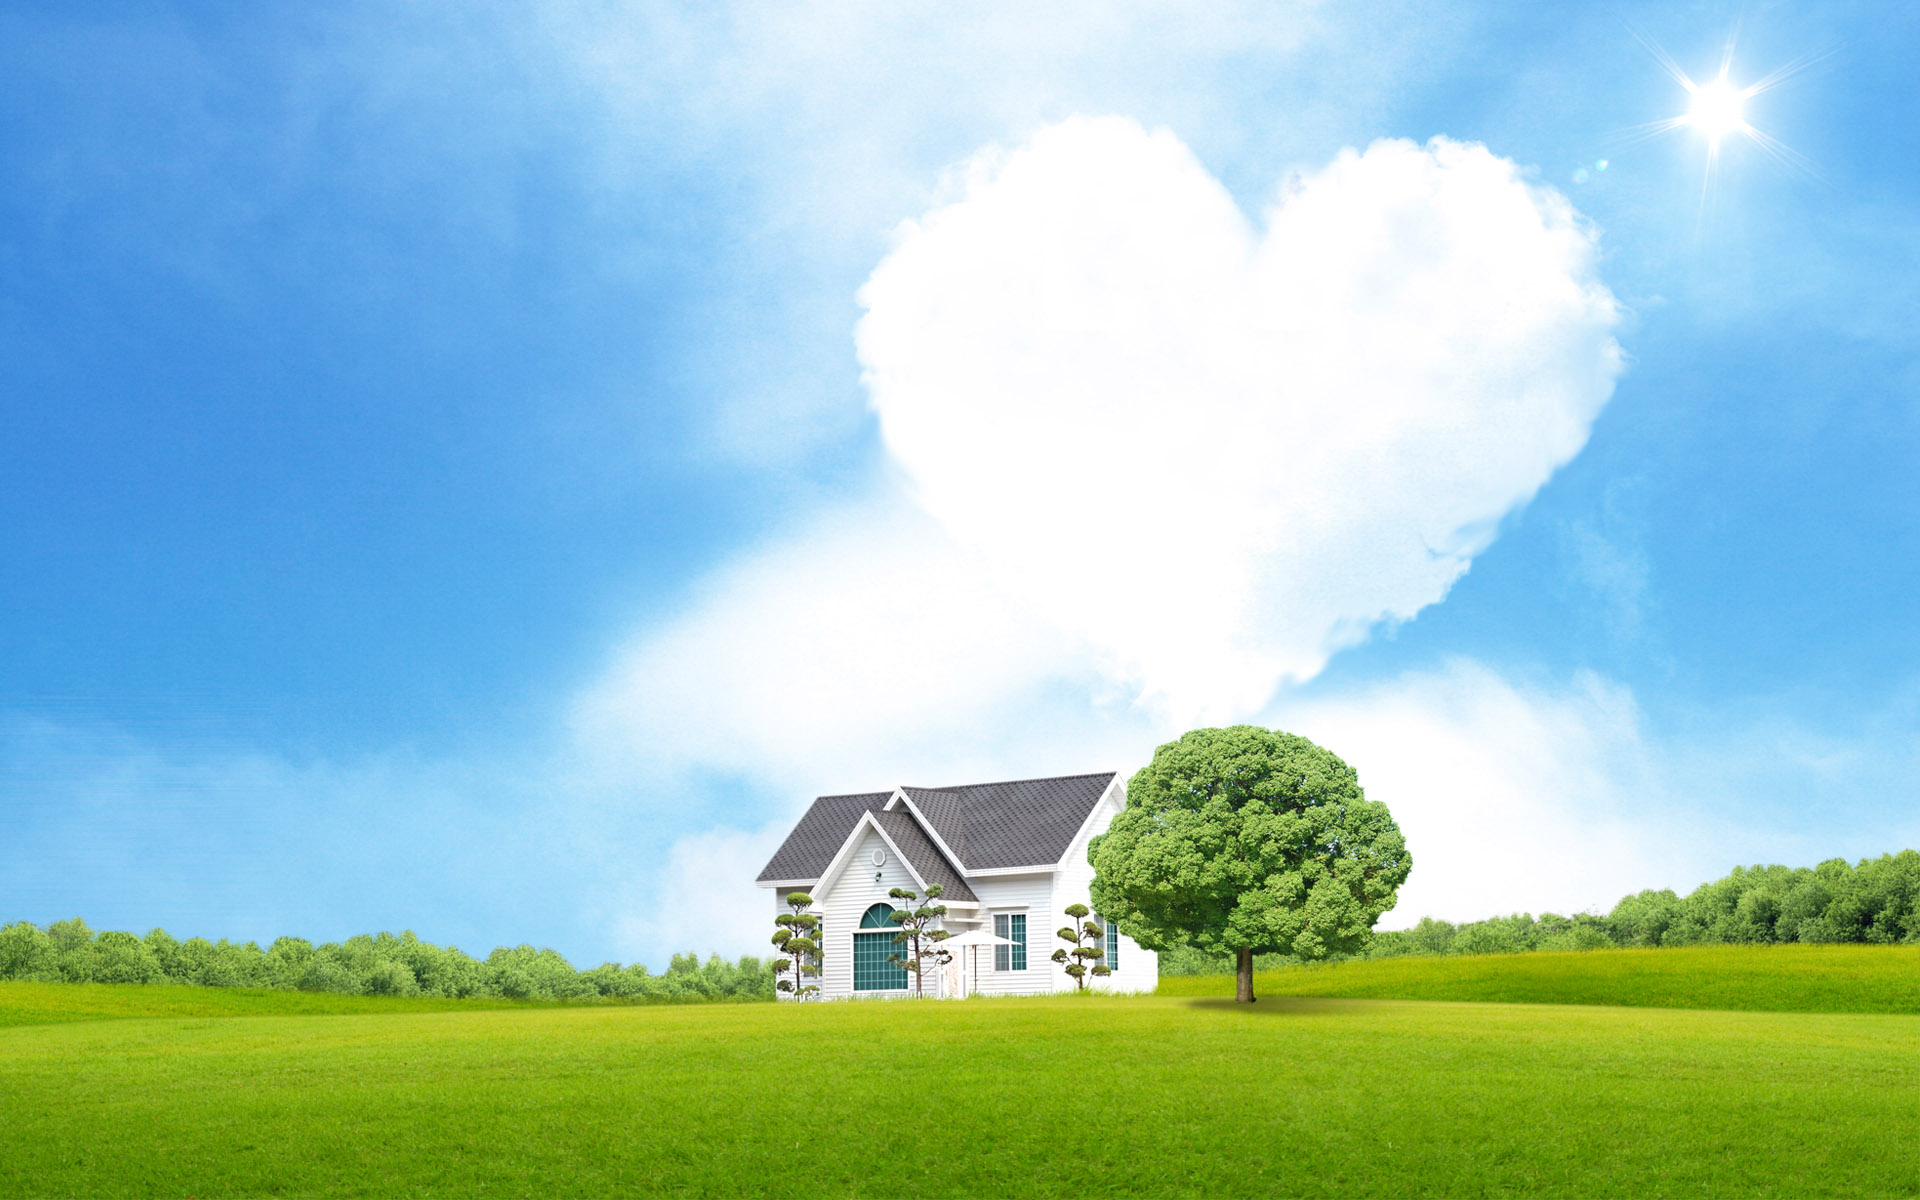 Dream love house wallpaper